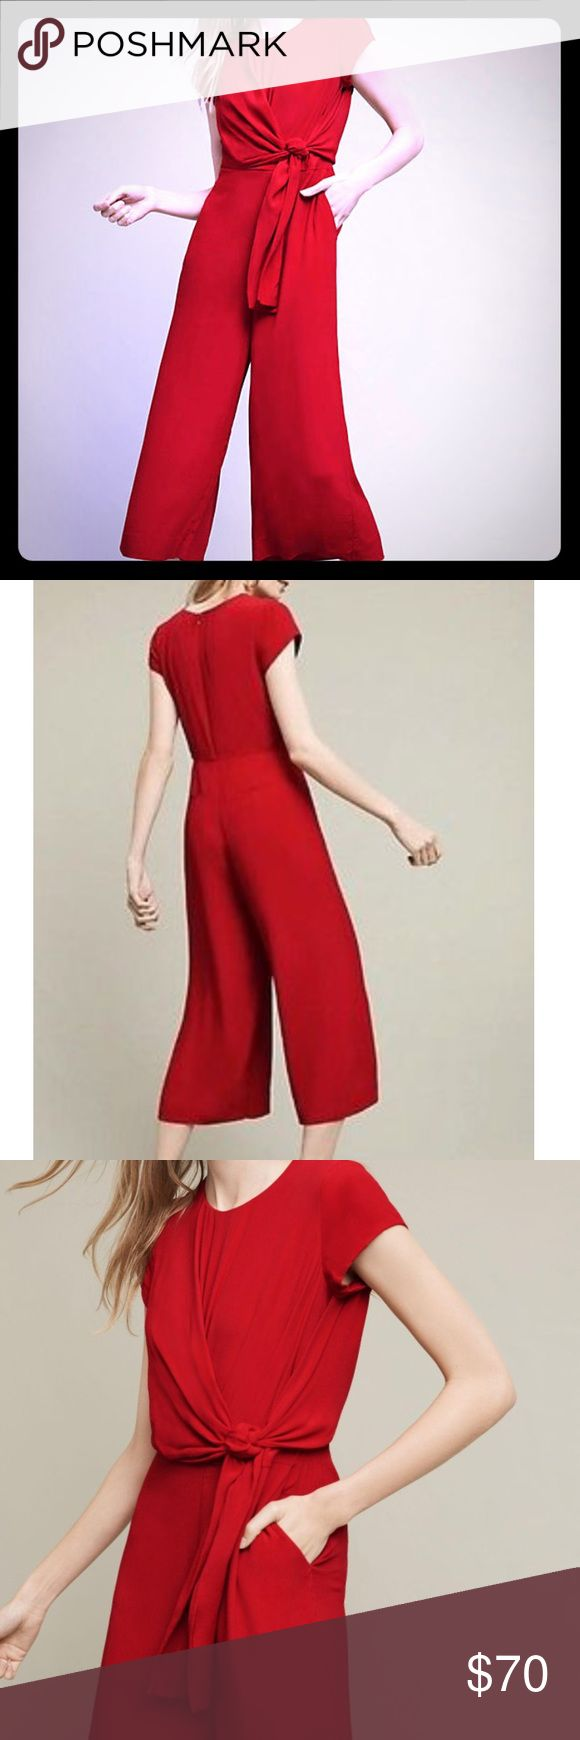 Stunning midi jumpsuit Maeve from Anthropologie midi jumpsuit is brand new in perfect condition. Rayon, back zipper, tie waist, side pockets. Reasonable offers only please, no trades. Anthropologie Dresses Midi